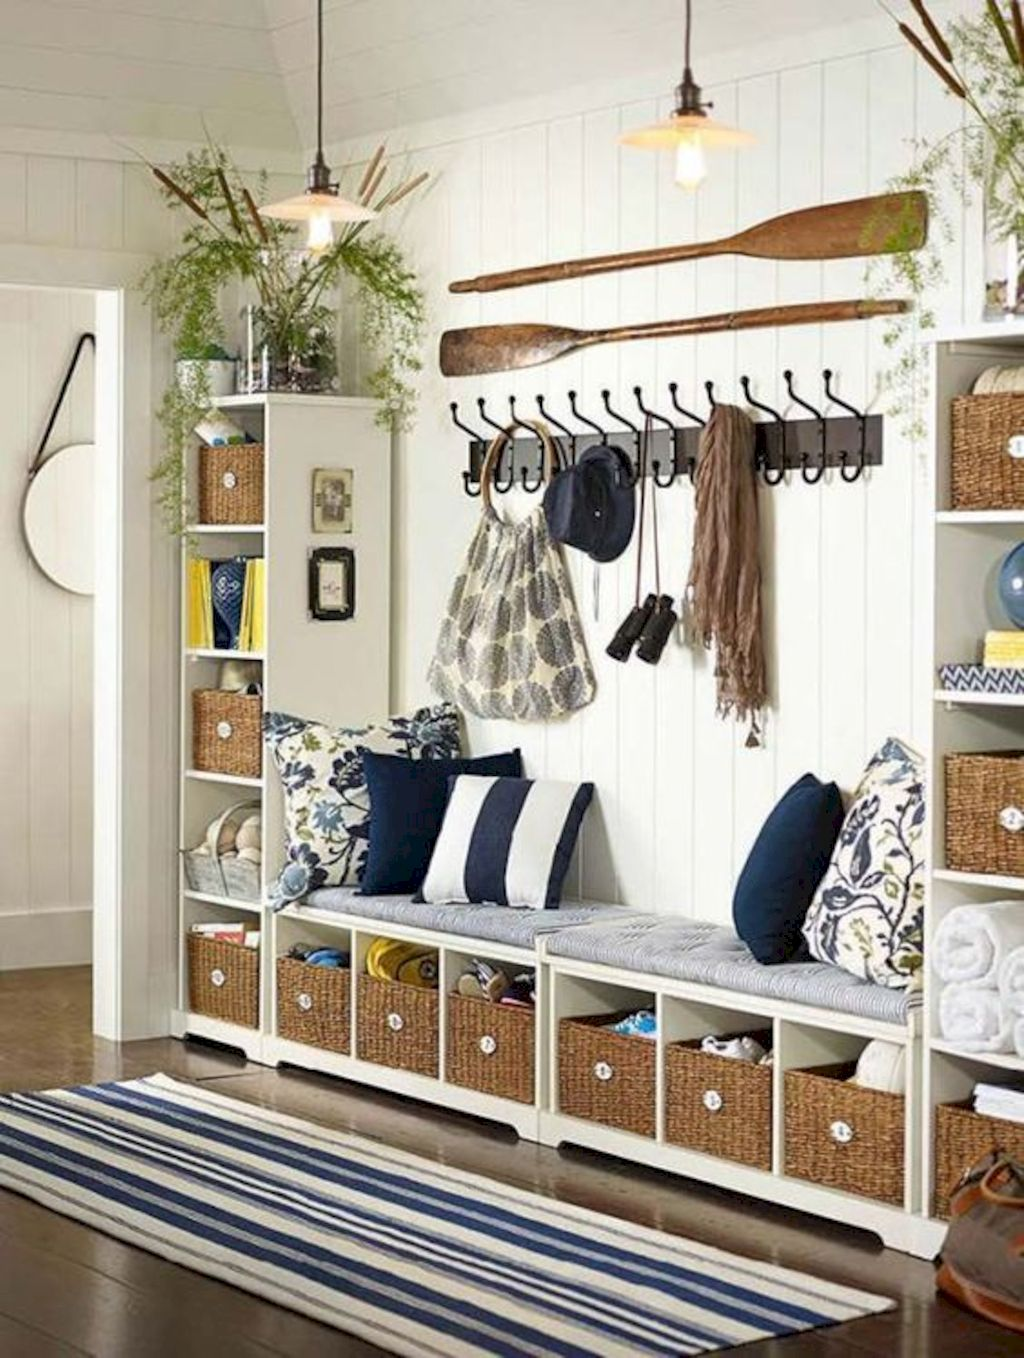 Coastal chic decoration with nautical accessories showing a fresh look in cool beach house styles Image 10